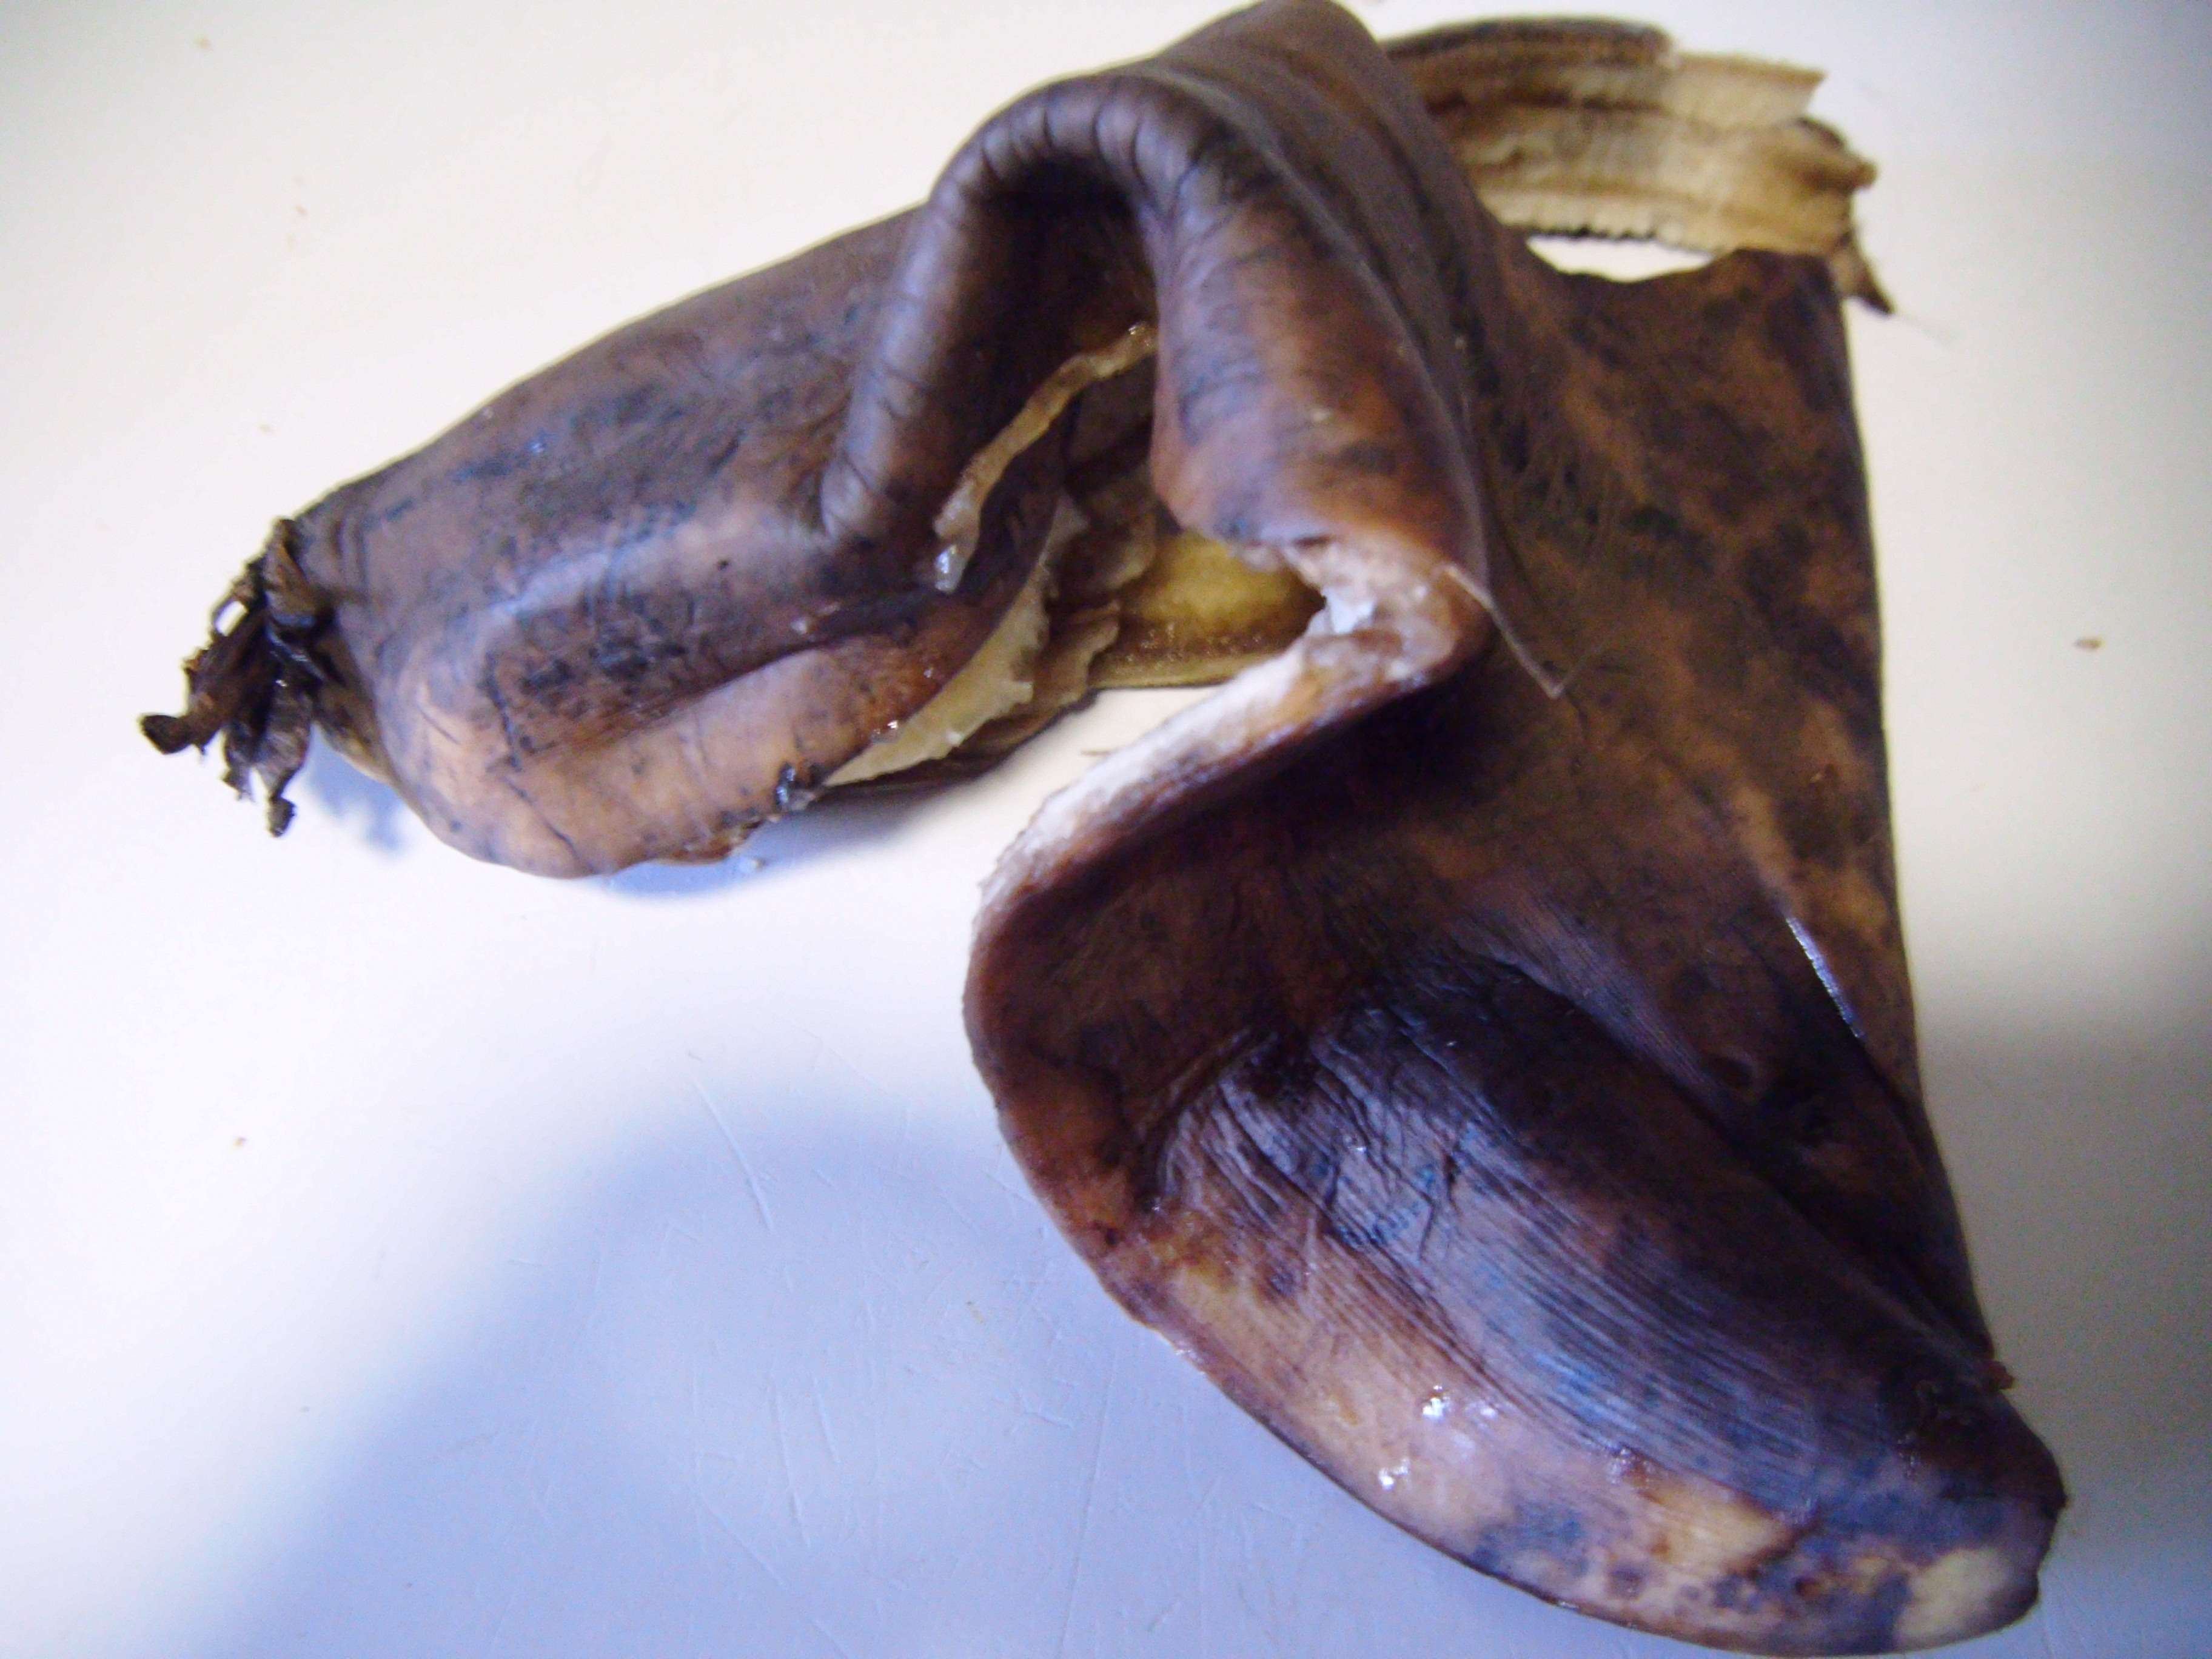 Rotten Banana Peels Something For Almost Nothing